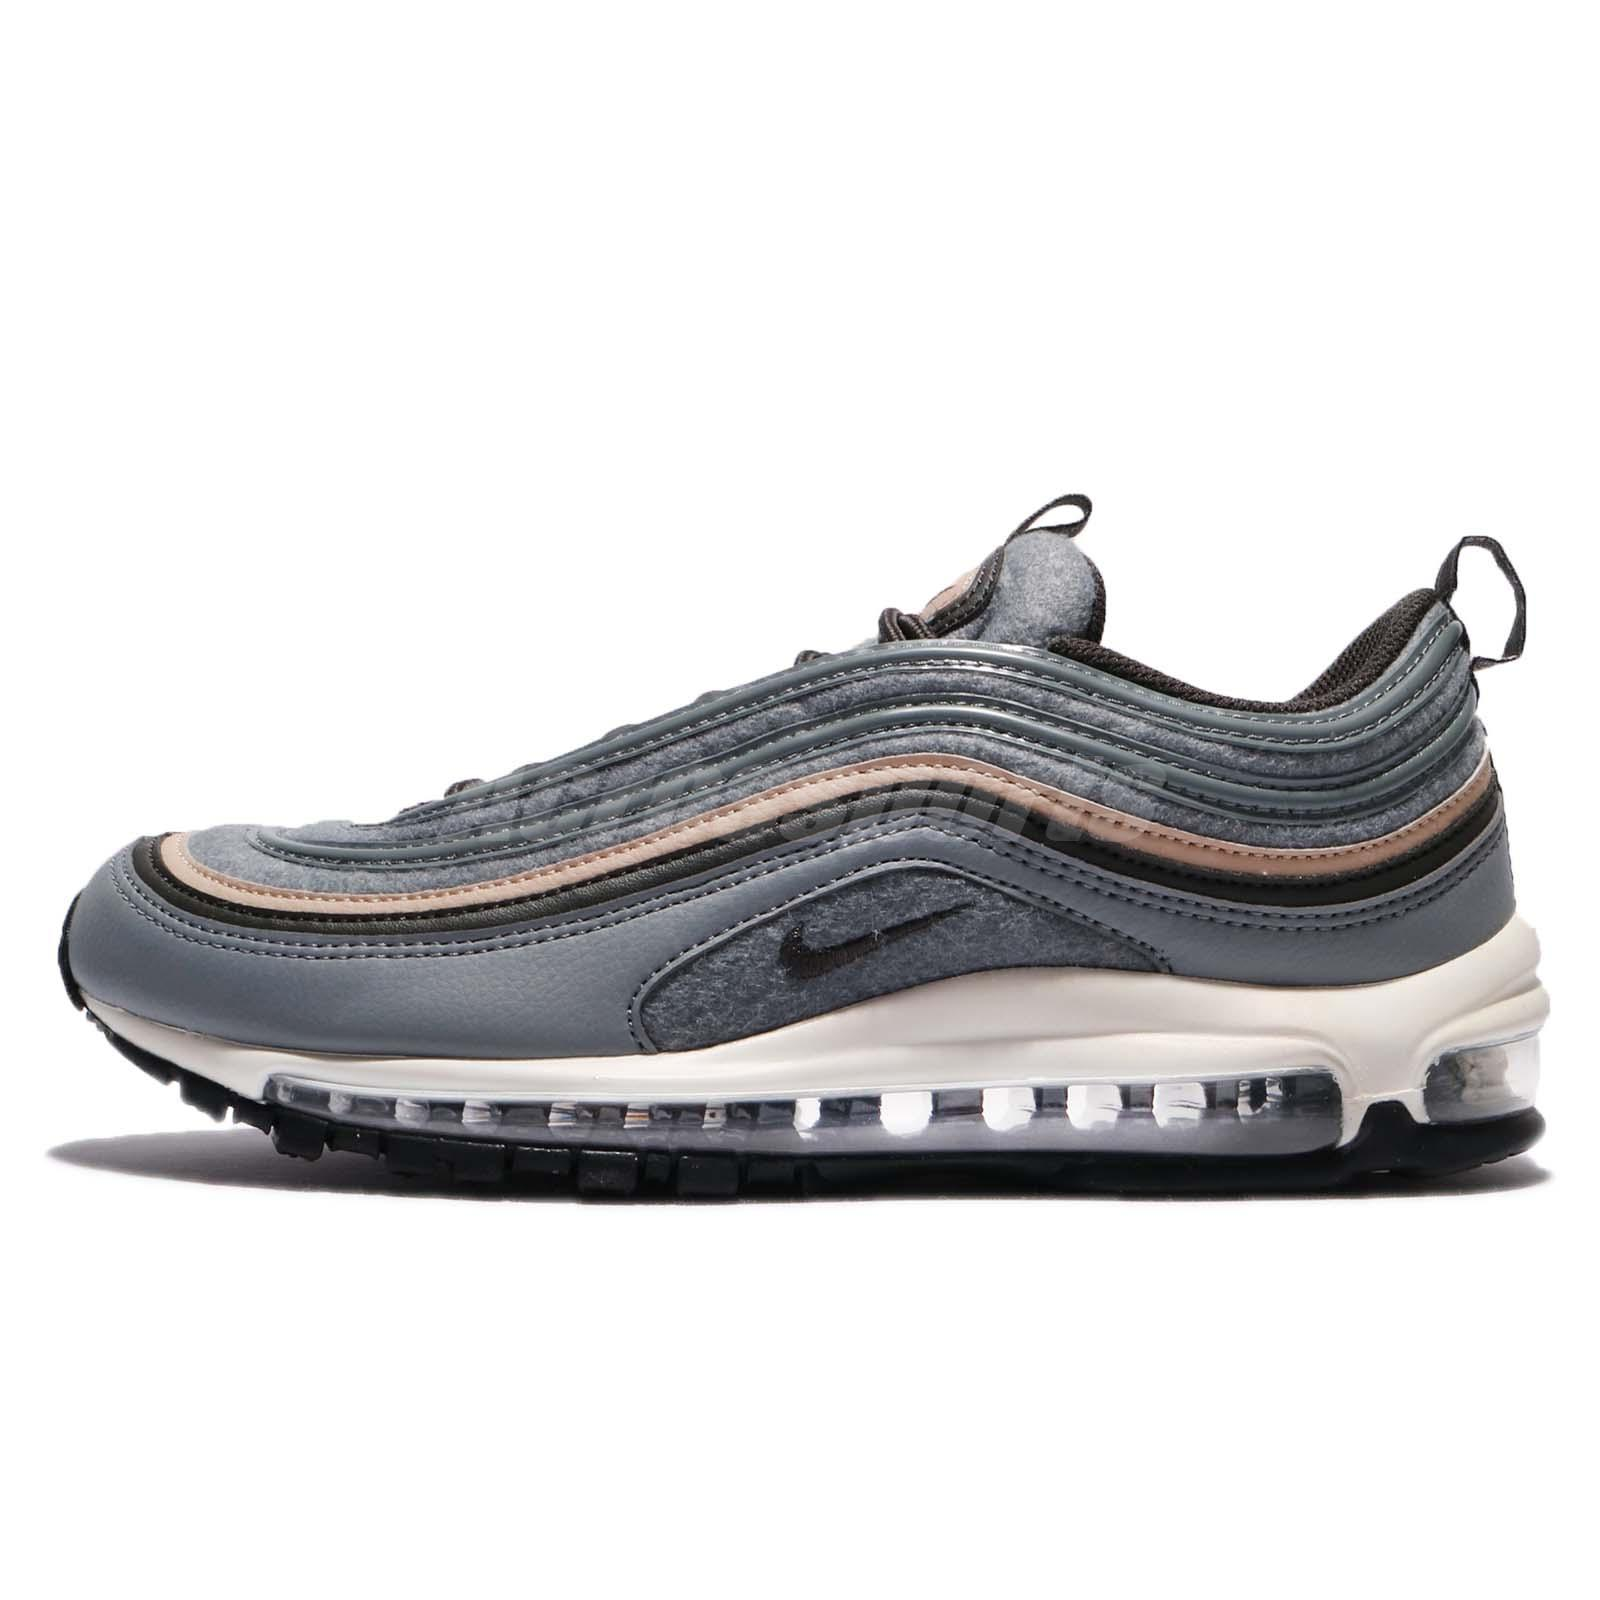 Nike Air Max 97 Premium Cool Grey Deep Pewter Mushroom Men Shoes 312834-003